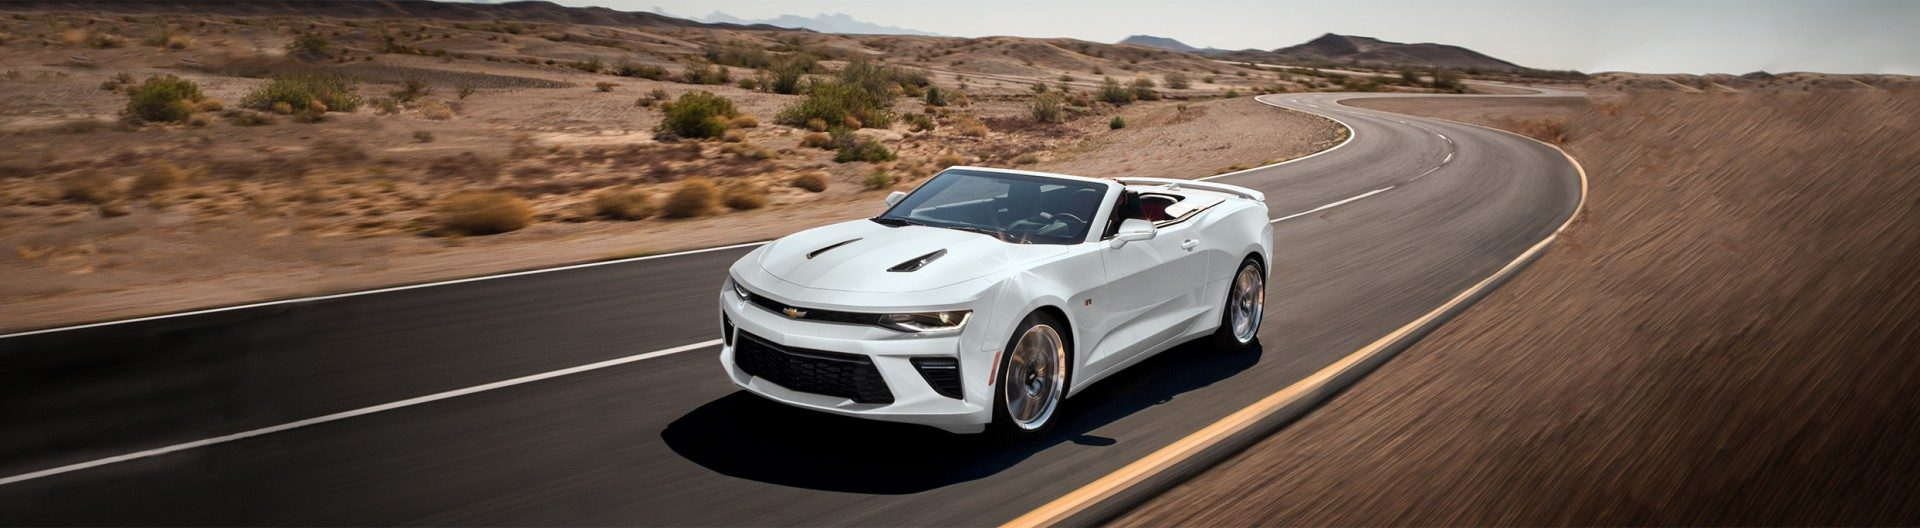 Camaro 2018 Summit White